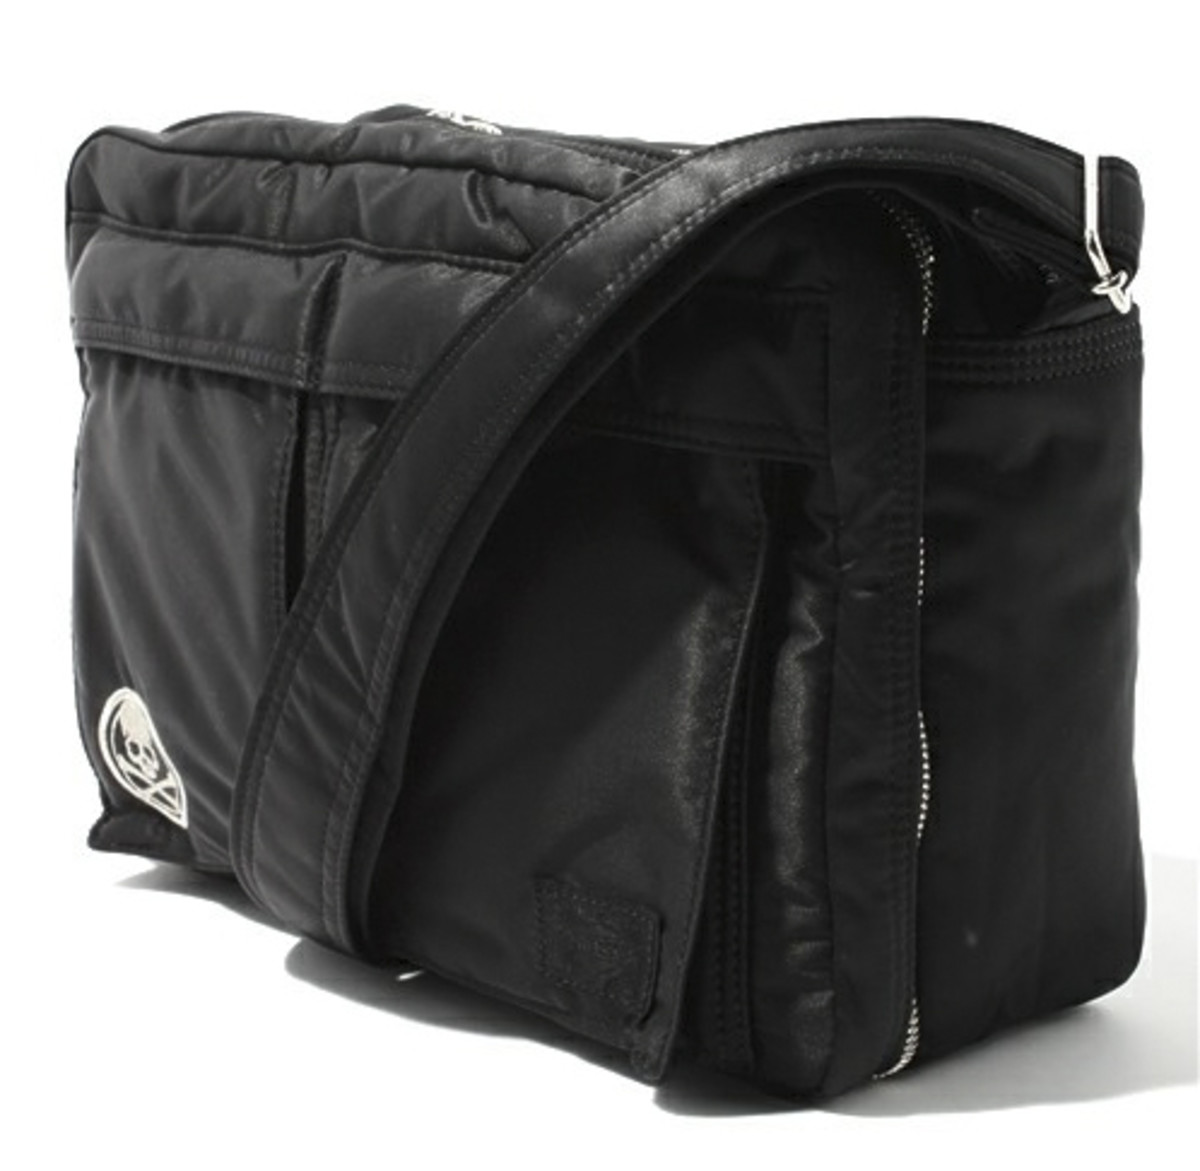 mastermind-JAPAN-porter-large-shoulder-bag-02